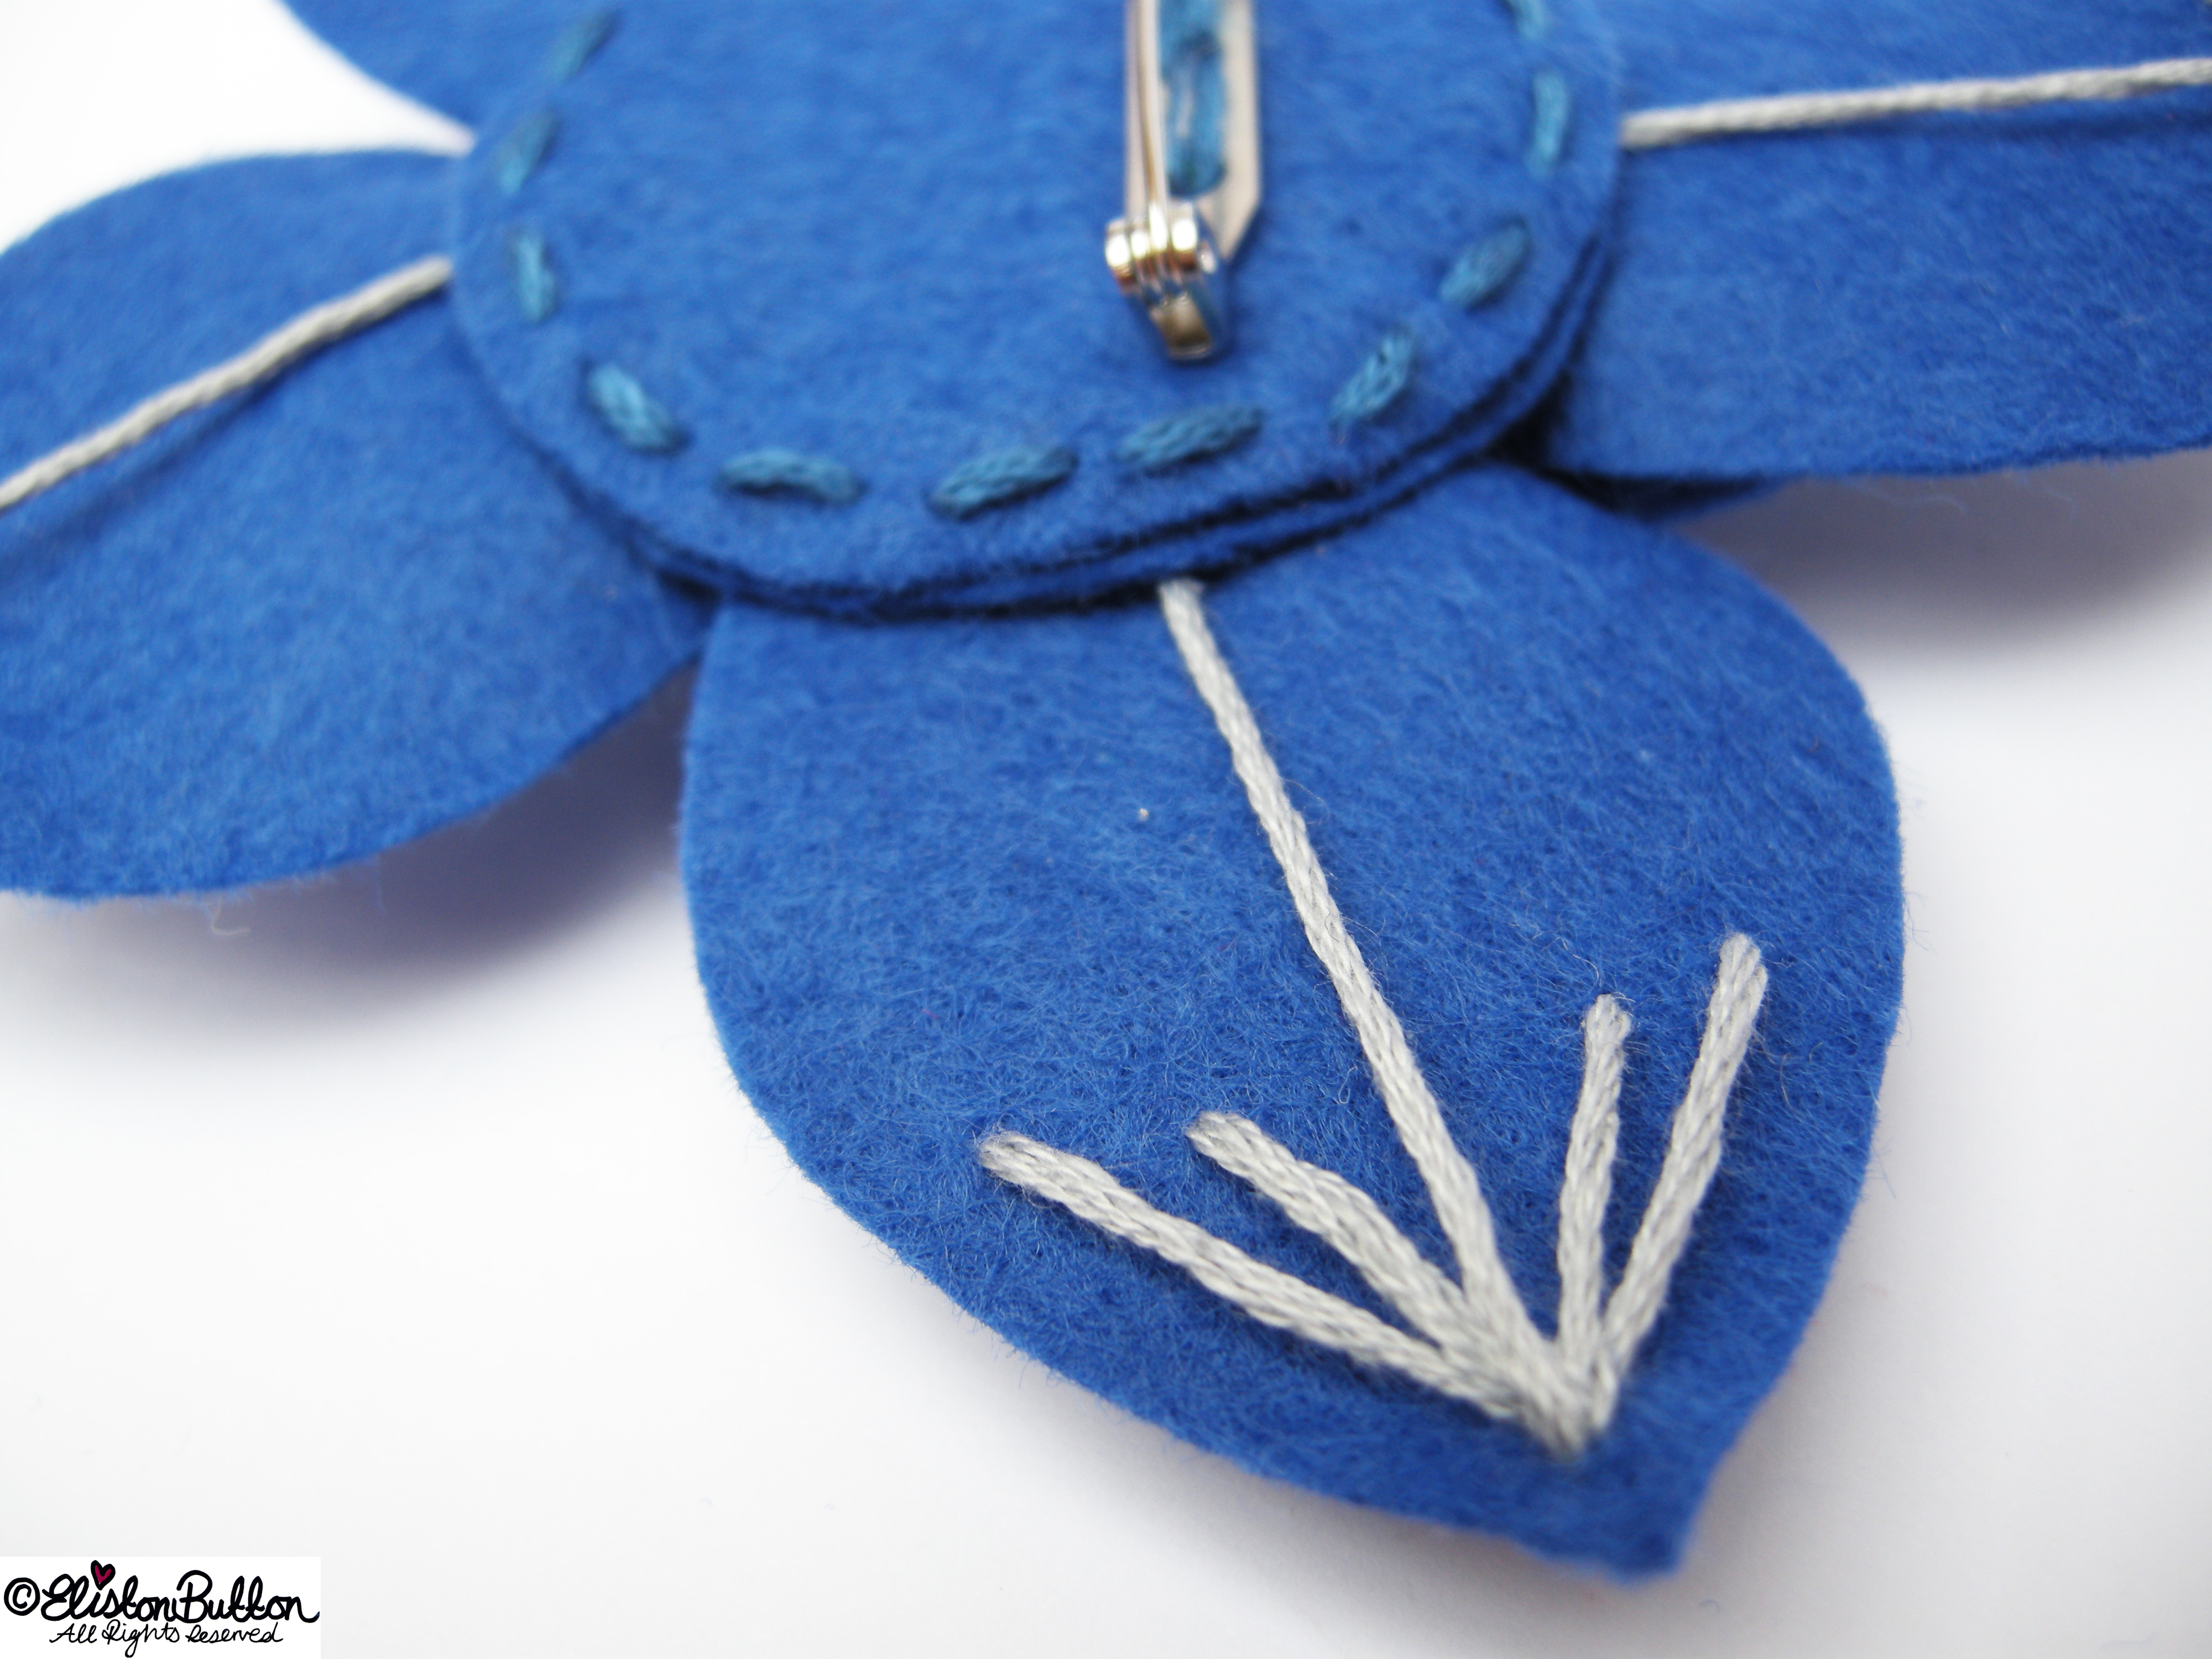 Out of the Blue Embroidered Felt Flower Brooch - Back Detail - 27 Before 27 - Out of the Blue at www.elistonbutton.com - Eliston Button - That Crafty Kid – Art, Design, Craft & Adventure. t of the Blue' – Number 6 in the '27 Before 27' blog challenge at www.elistonbutton.com - Eliston Button - That Crafty Kid